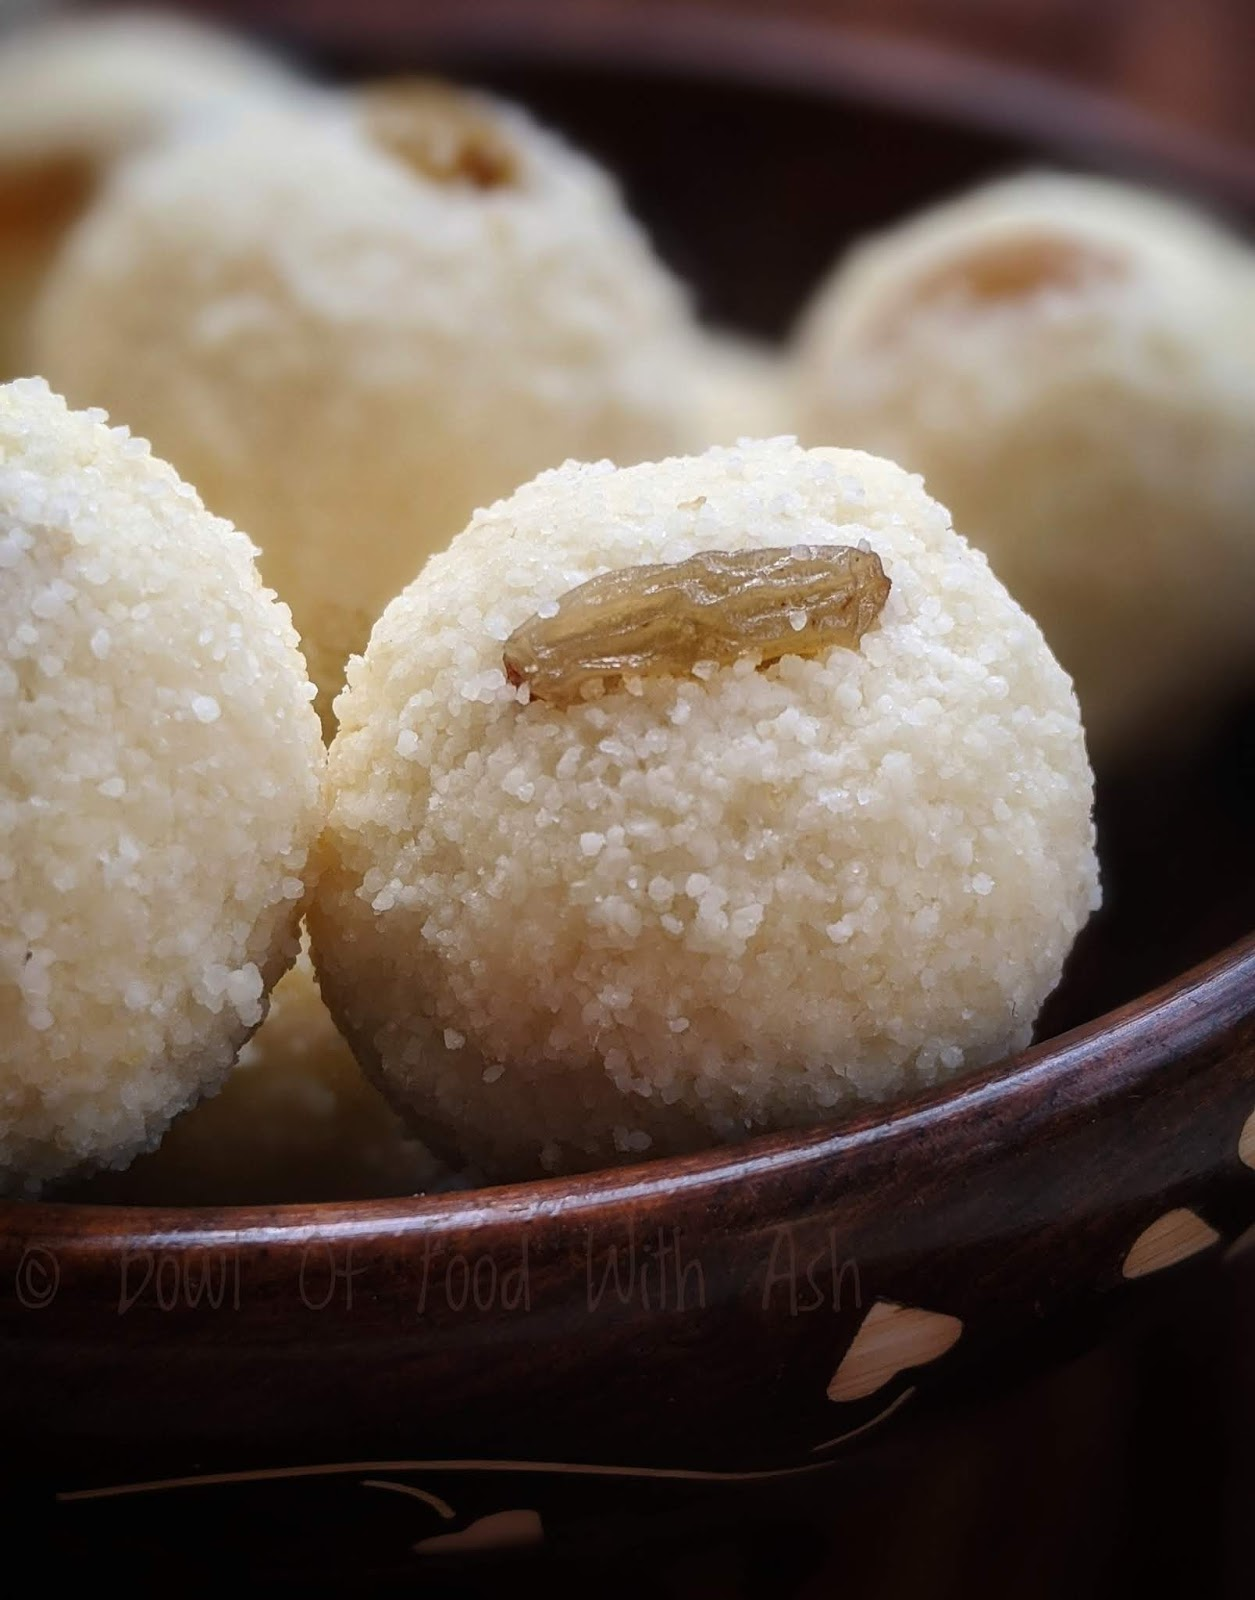 Rava ladoo recipe | How to make sooji laddu recipe